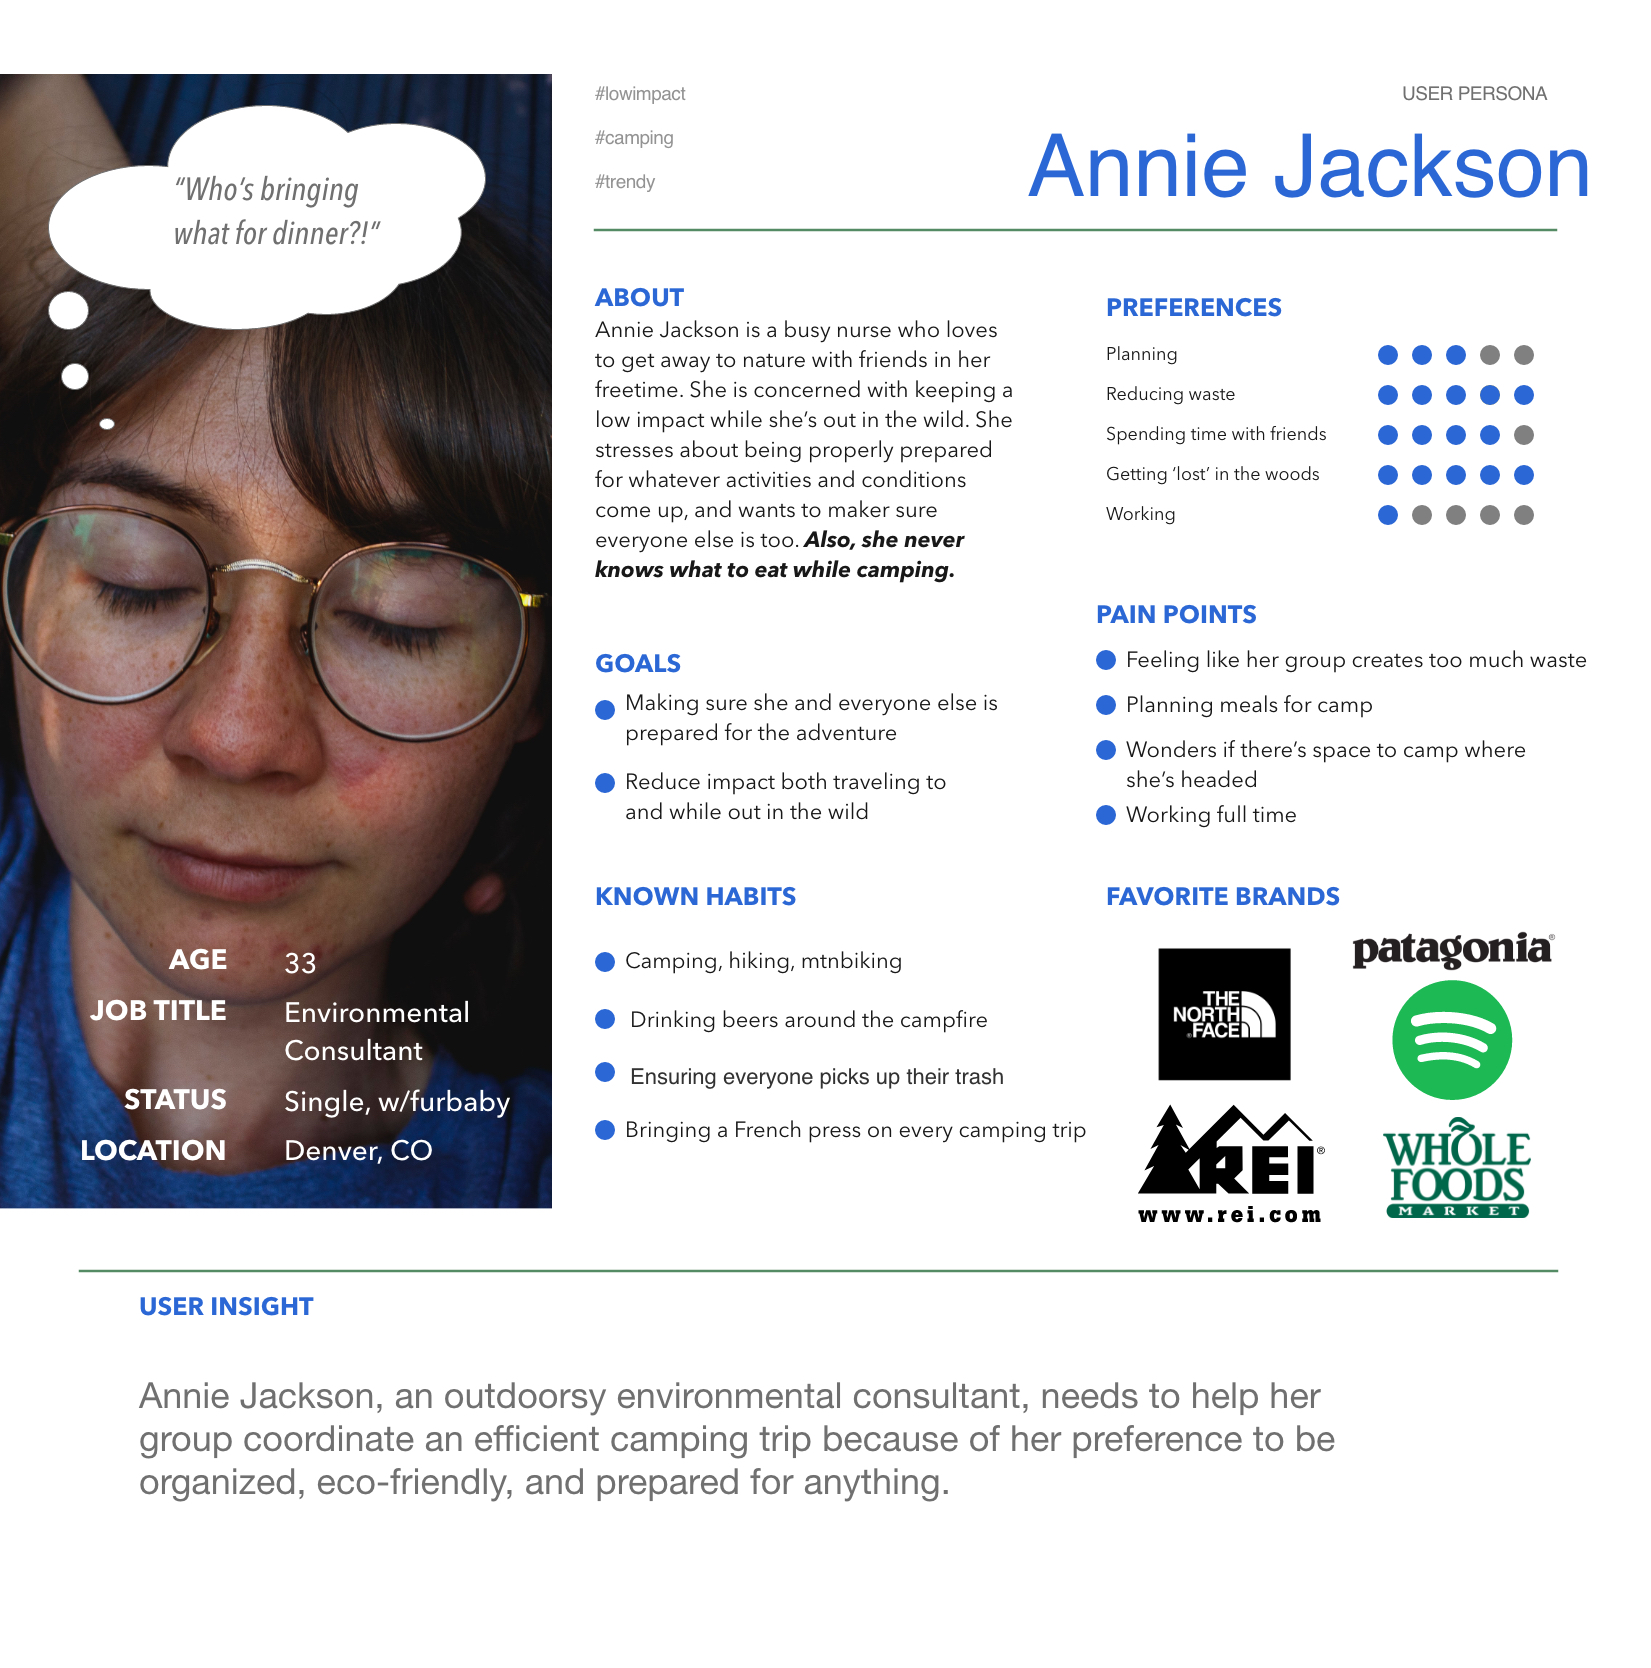 User Persona Details